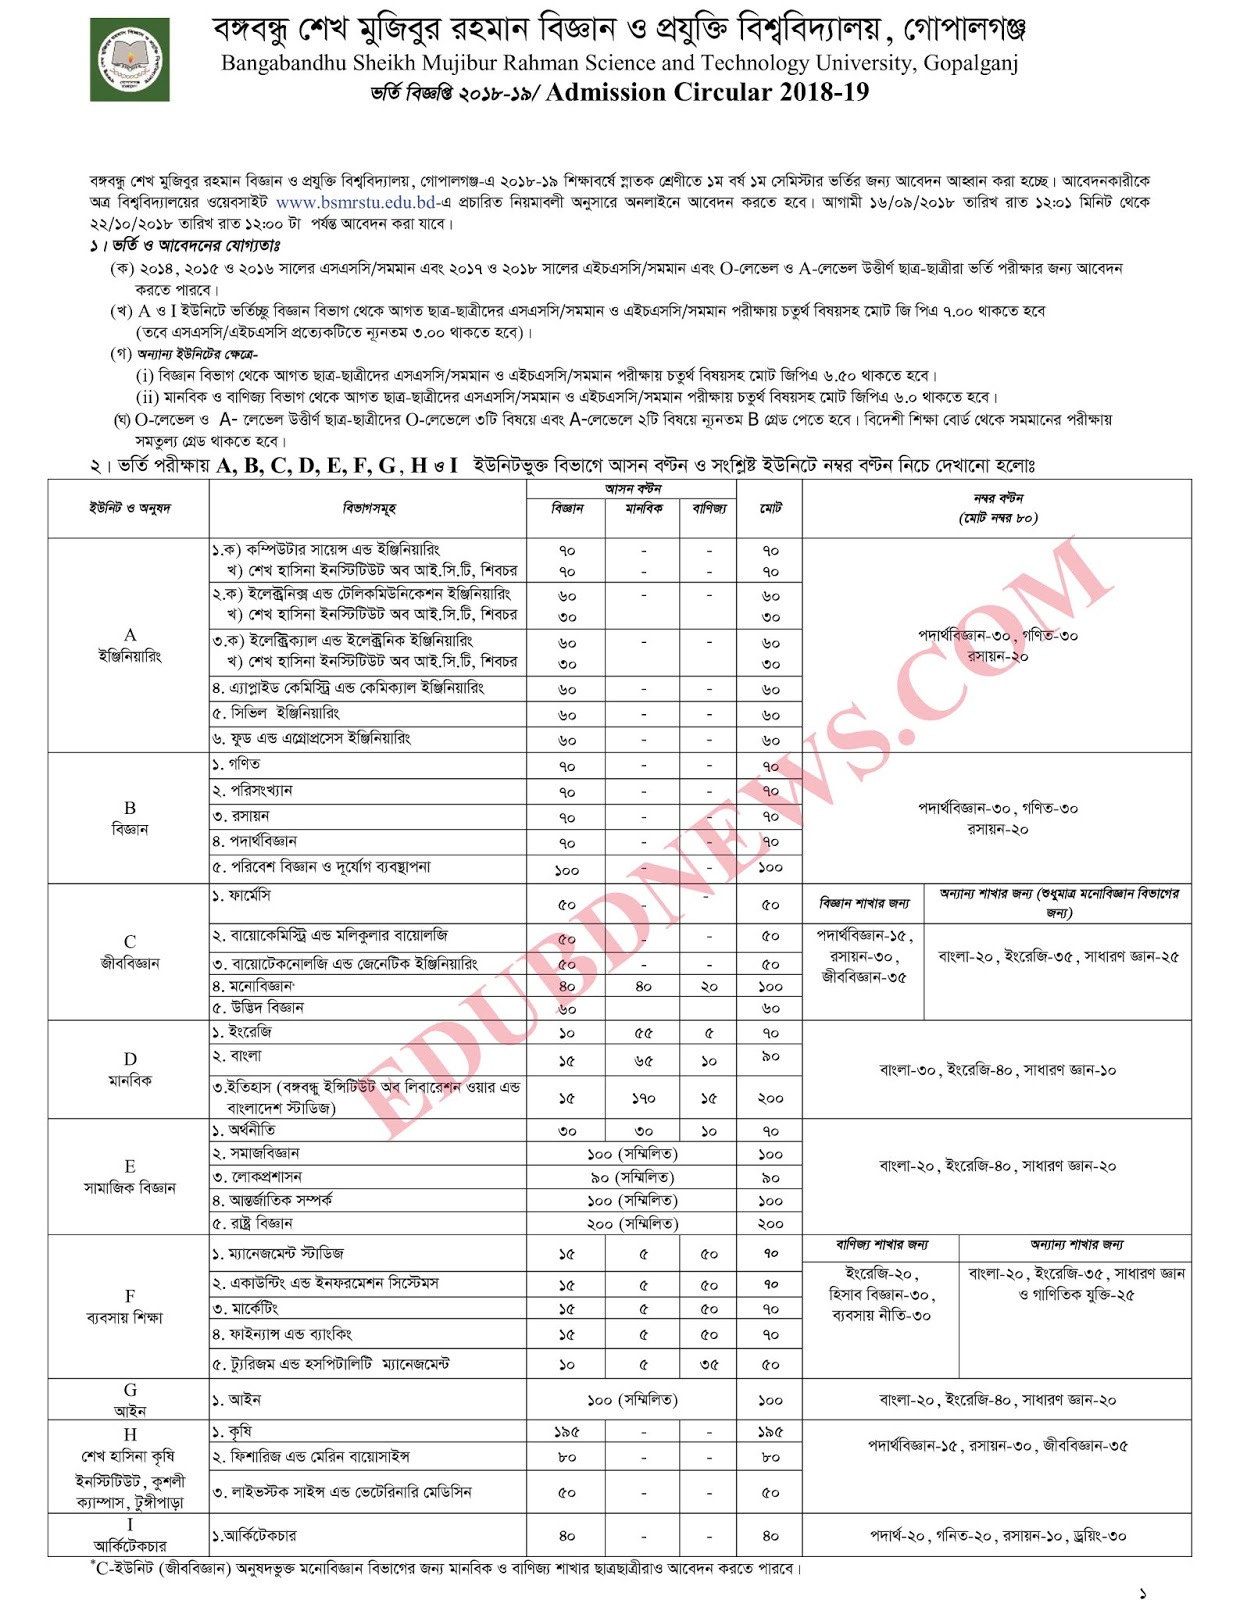 Bangabandhu Sheikh Mujibur Rahman Science & Technology University Admission Test Circular Notice 2018-19